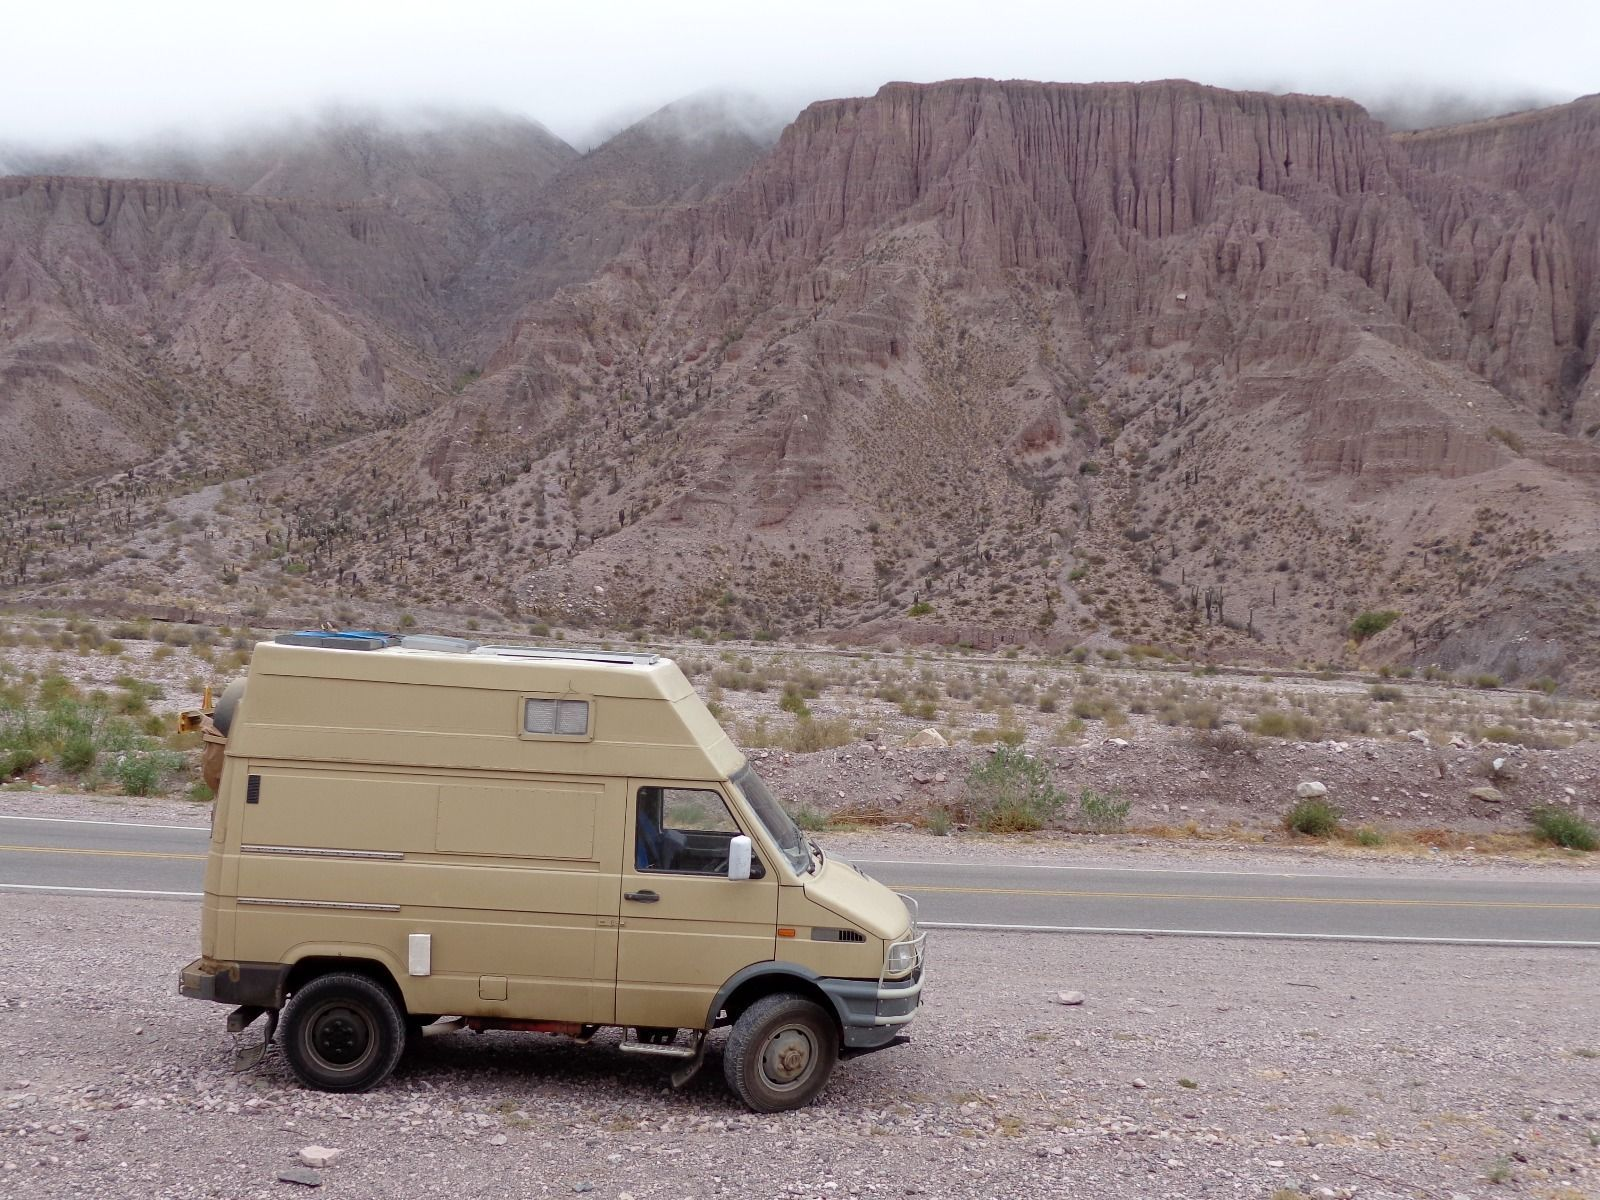 iveco daily 4x4 overland camper 4x4 vehicle and cars. Black Bedroom Furniture Sets. Home Design Ideas